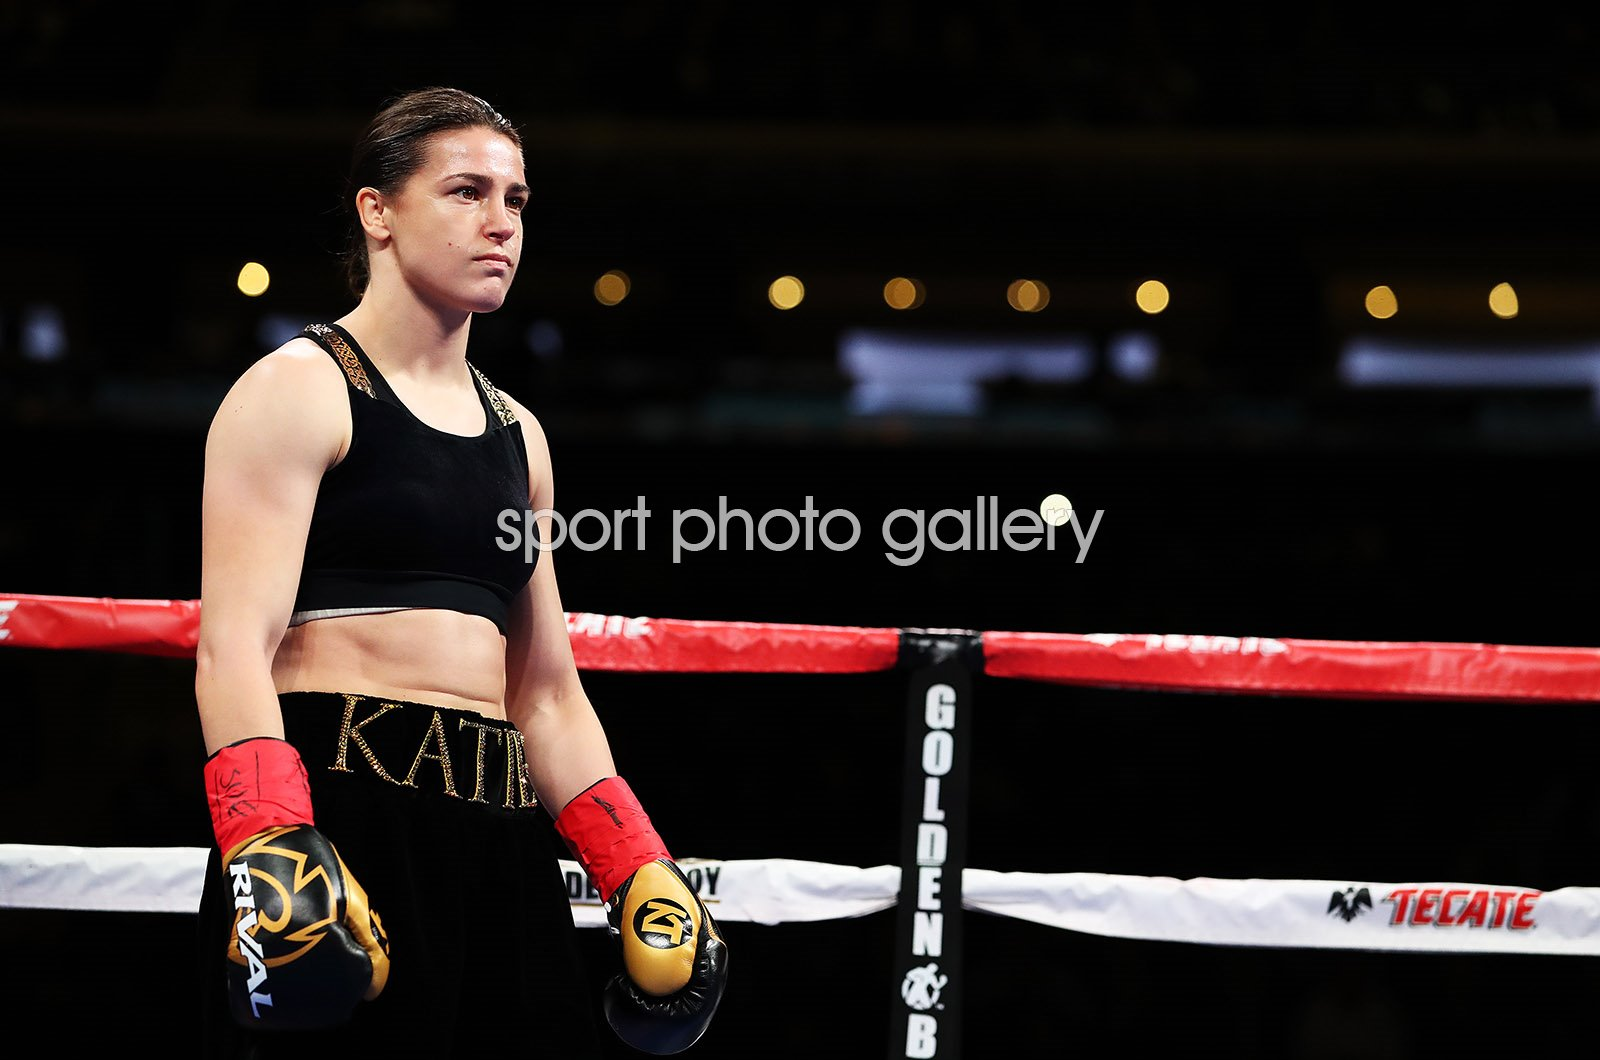 Katie Taylor v Eva Wahlstrom Fight New York 2018